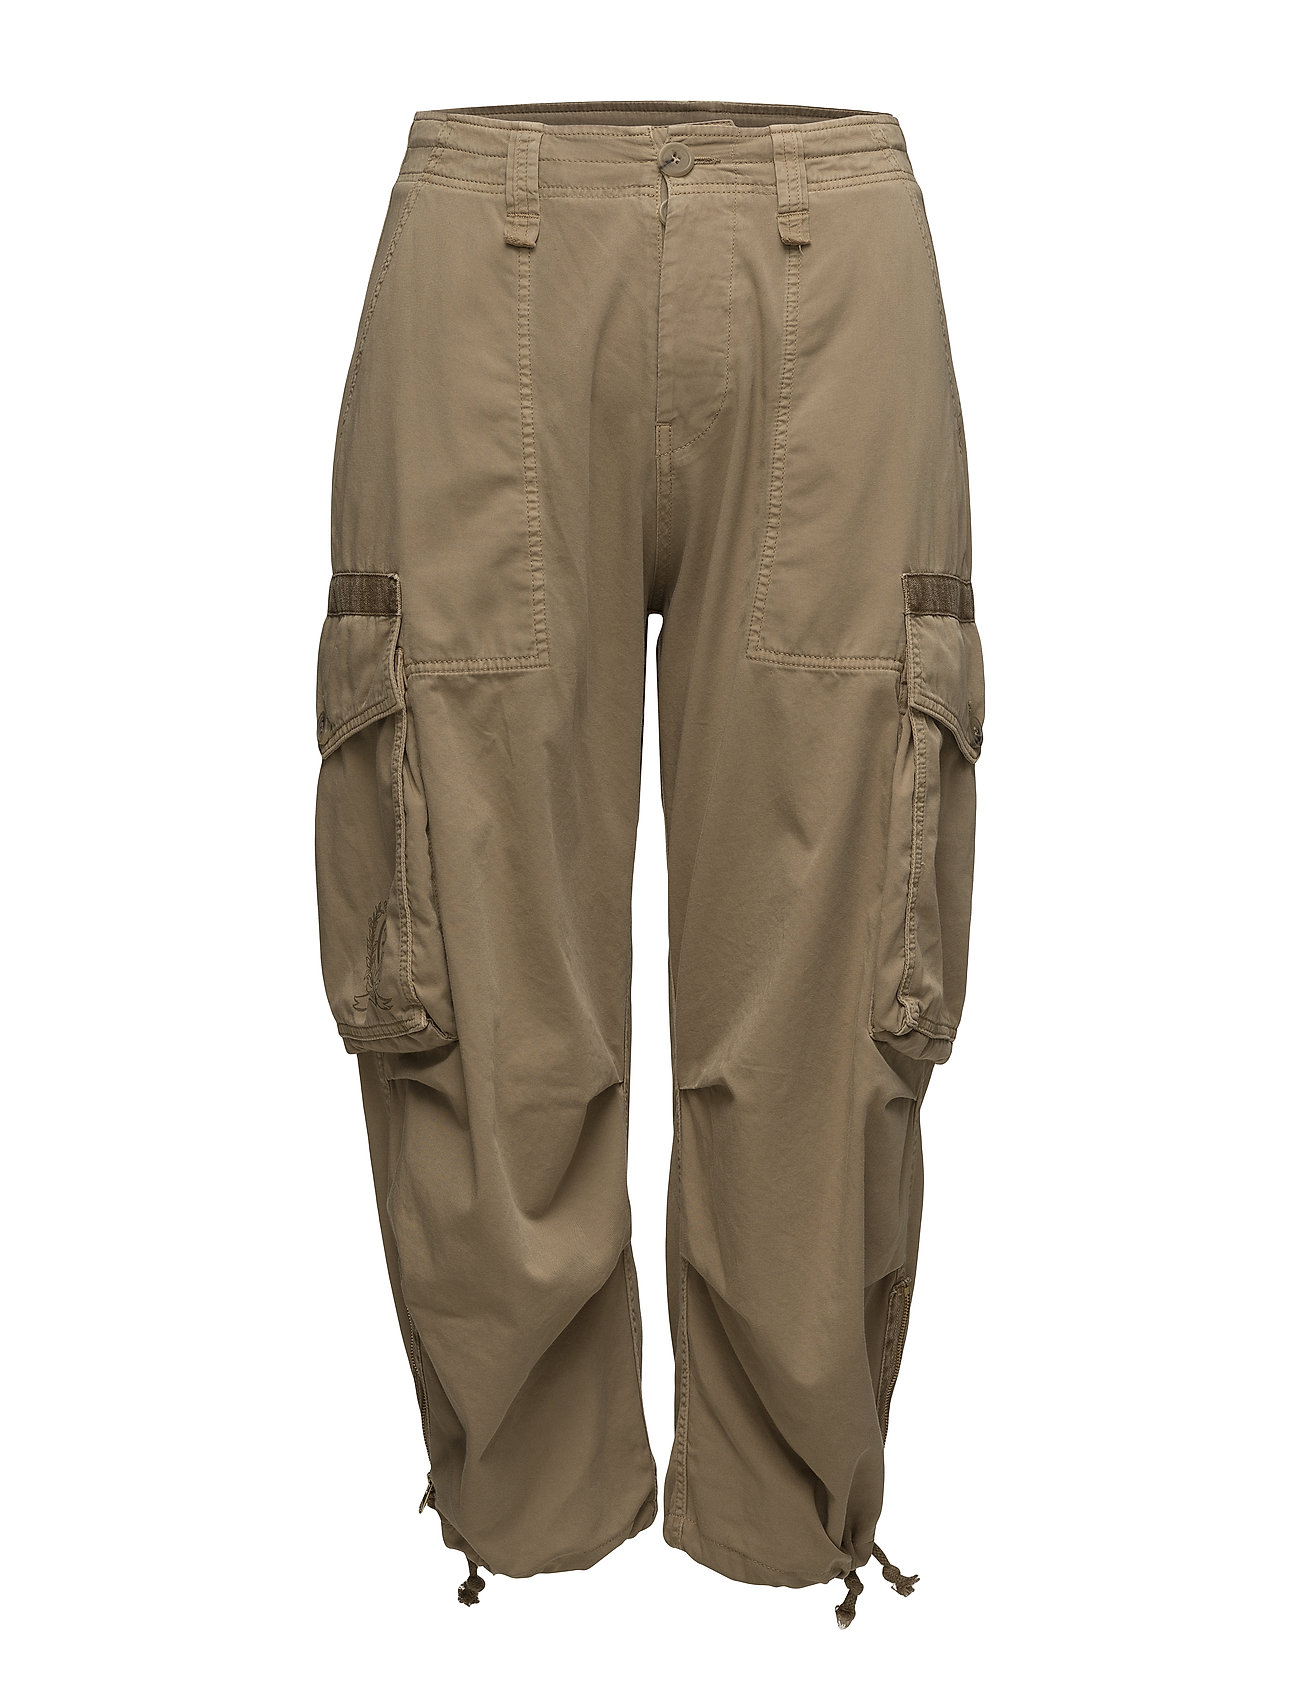 Hilfiger Collection CARGO PANT - GOLDEN YELLOW